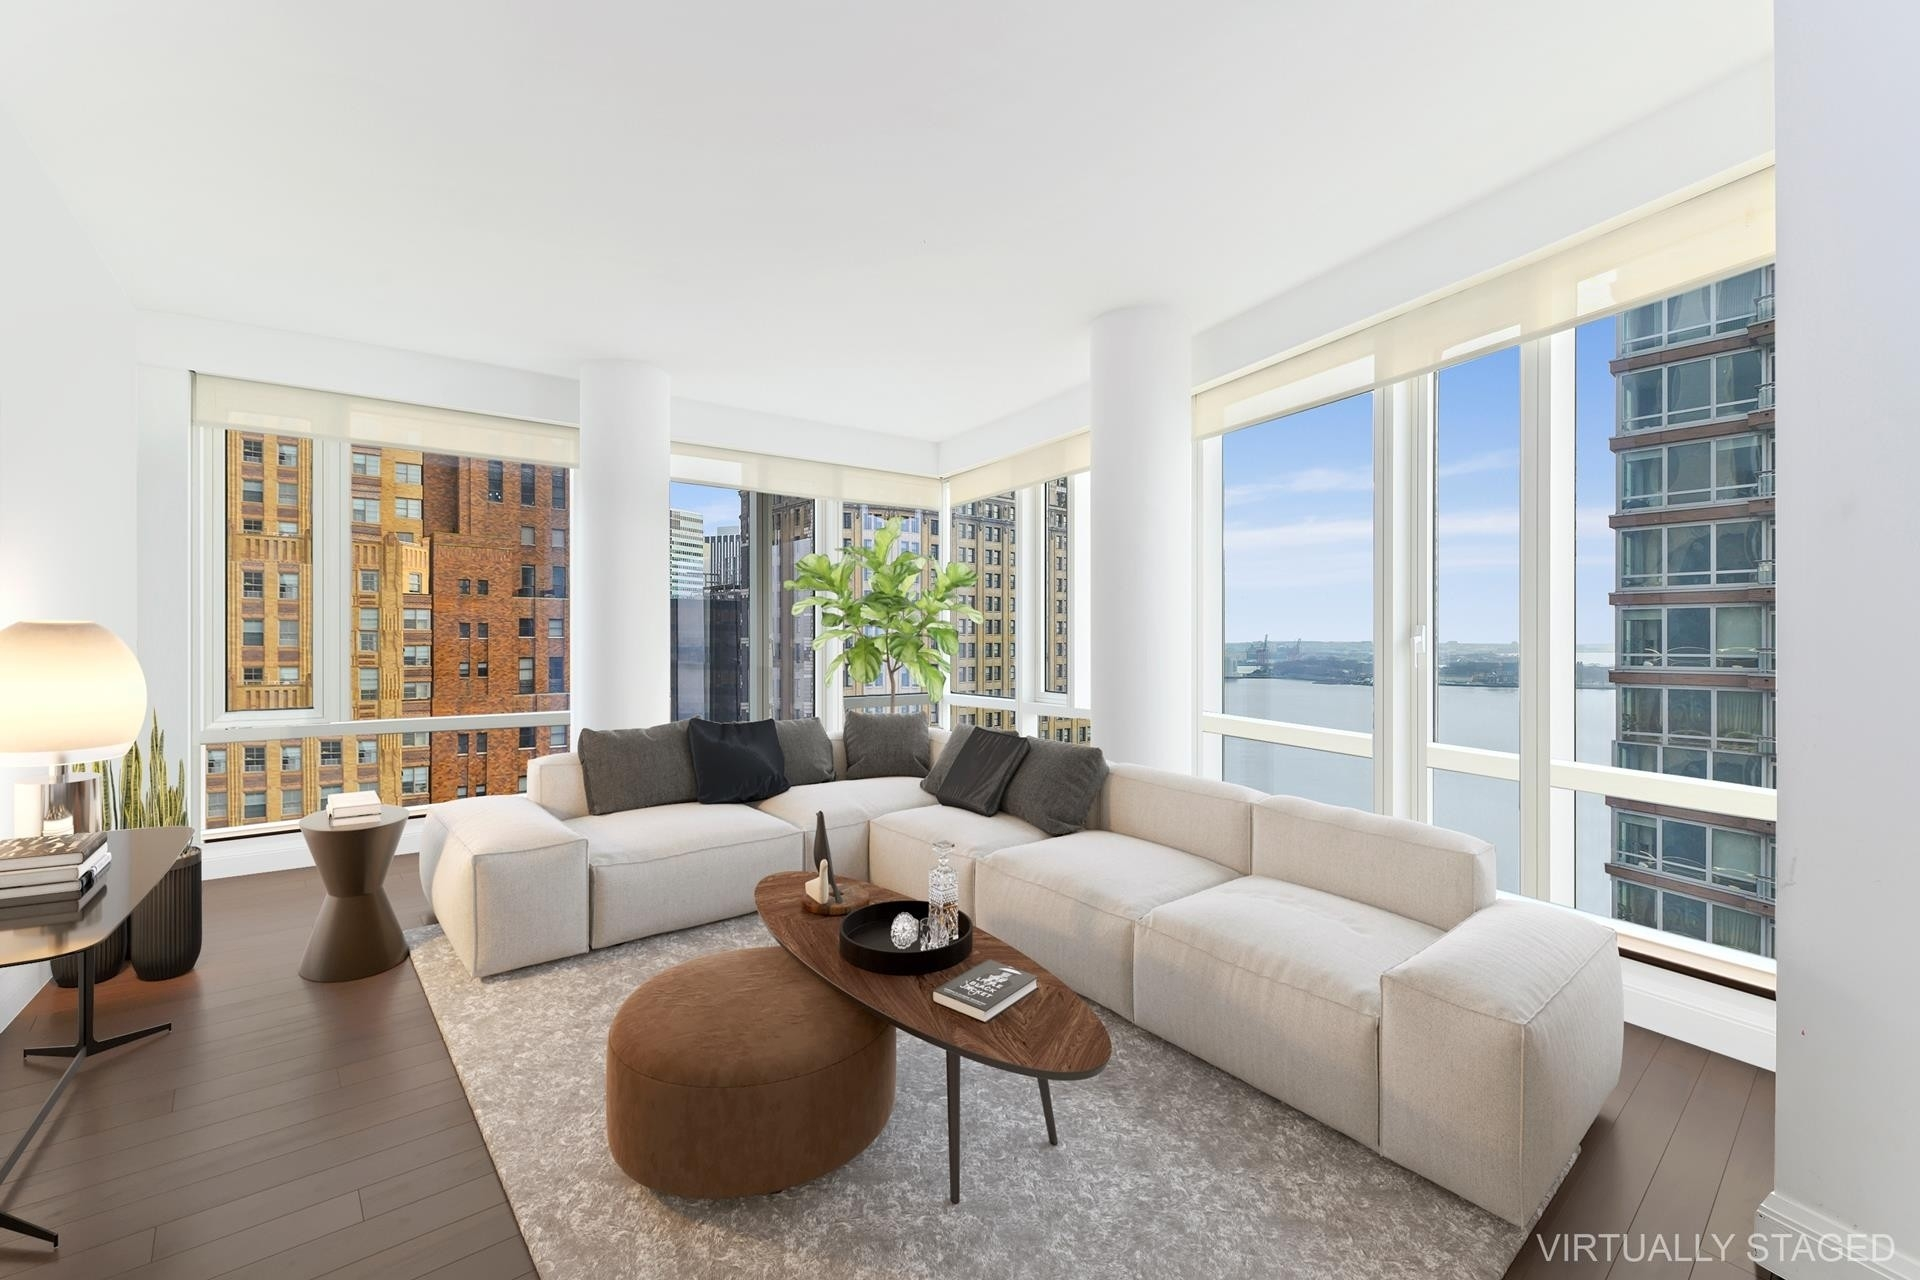 Property à The Visionaire, 70 Little West St, 22F Battery Park City, New York, NY 10004